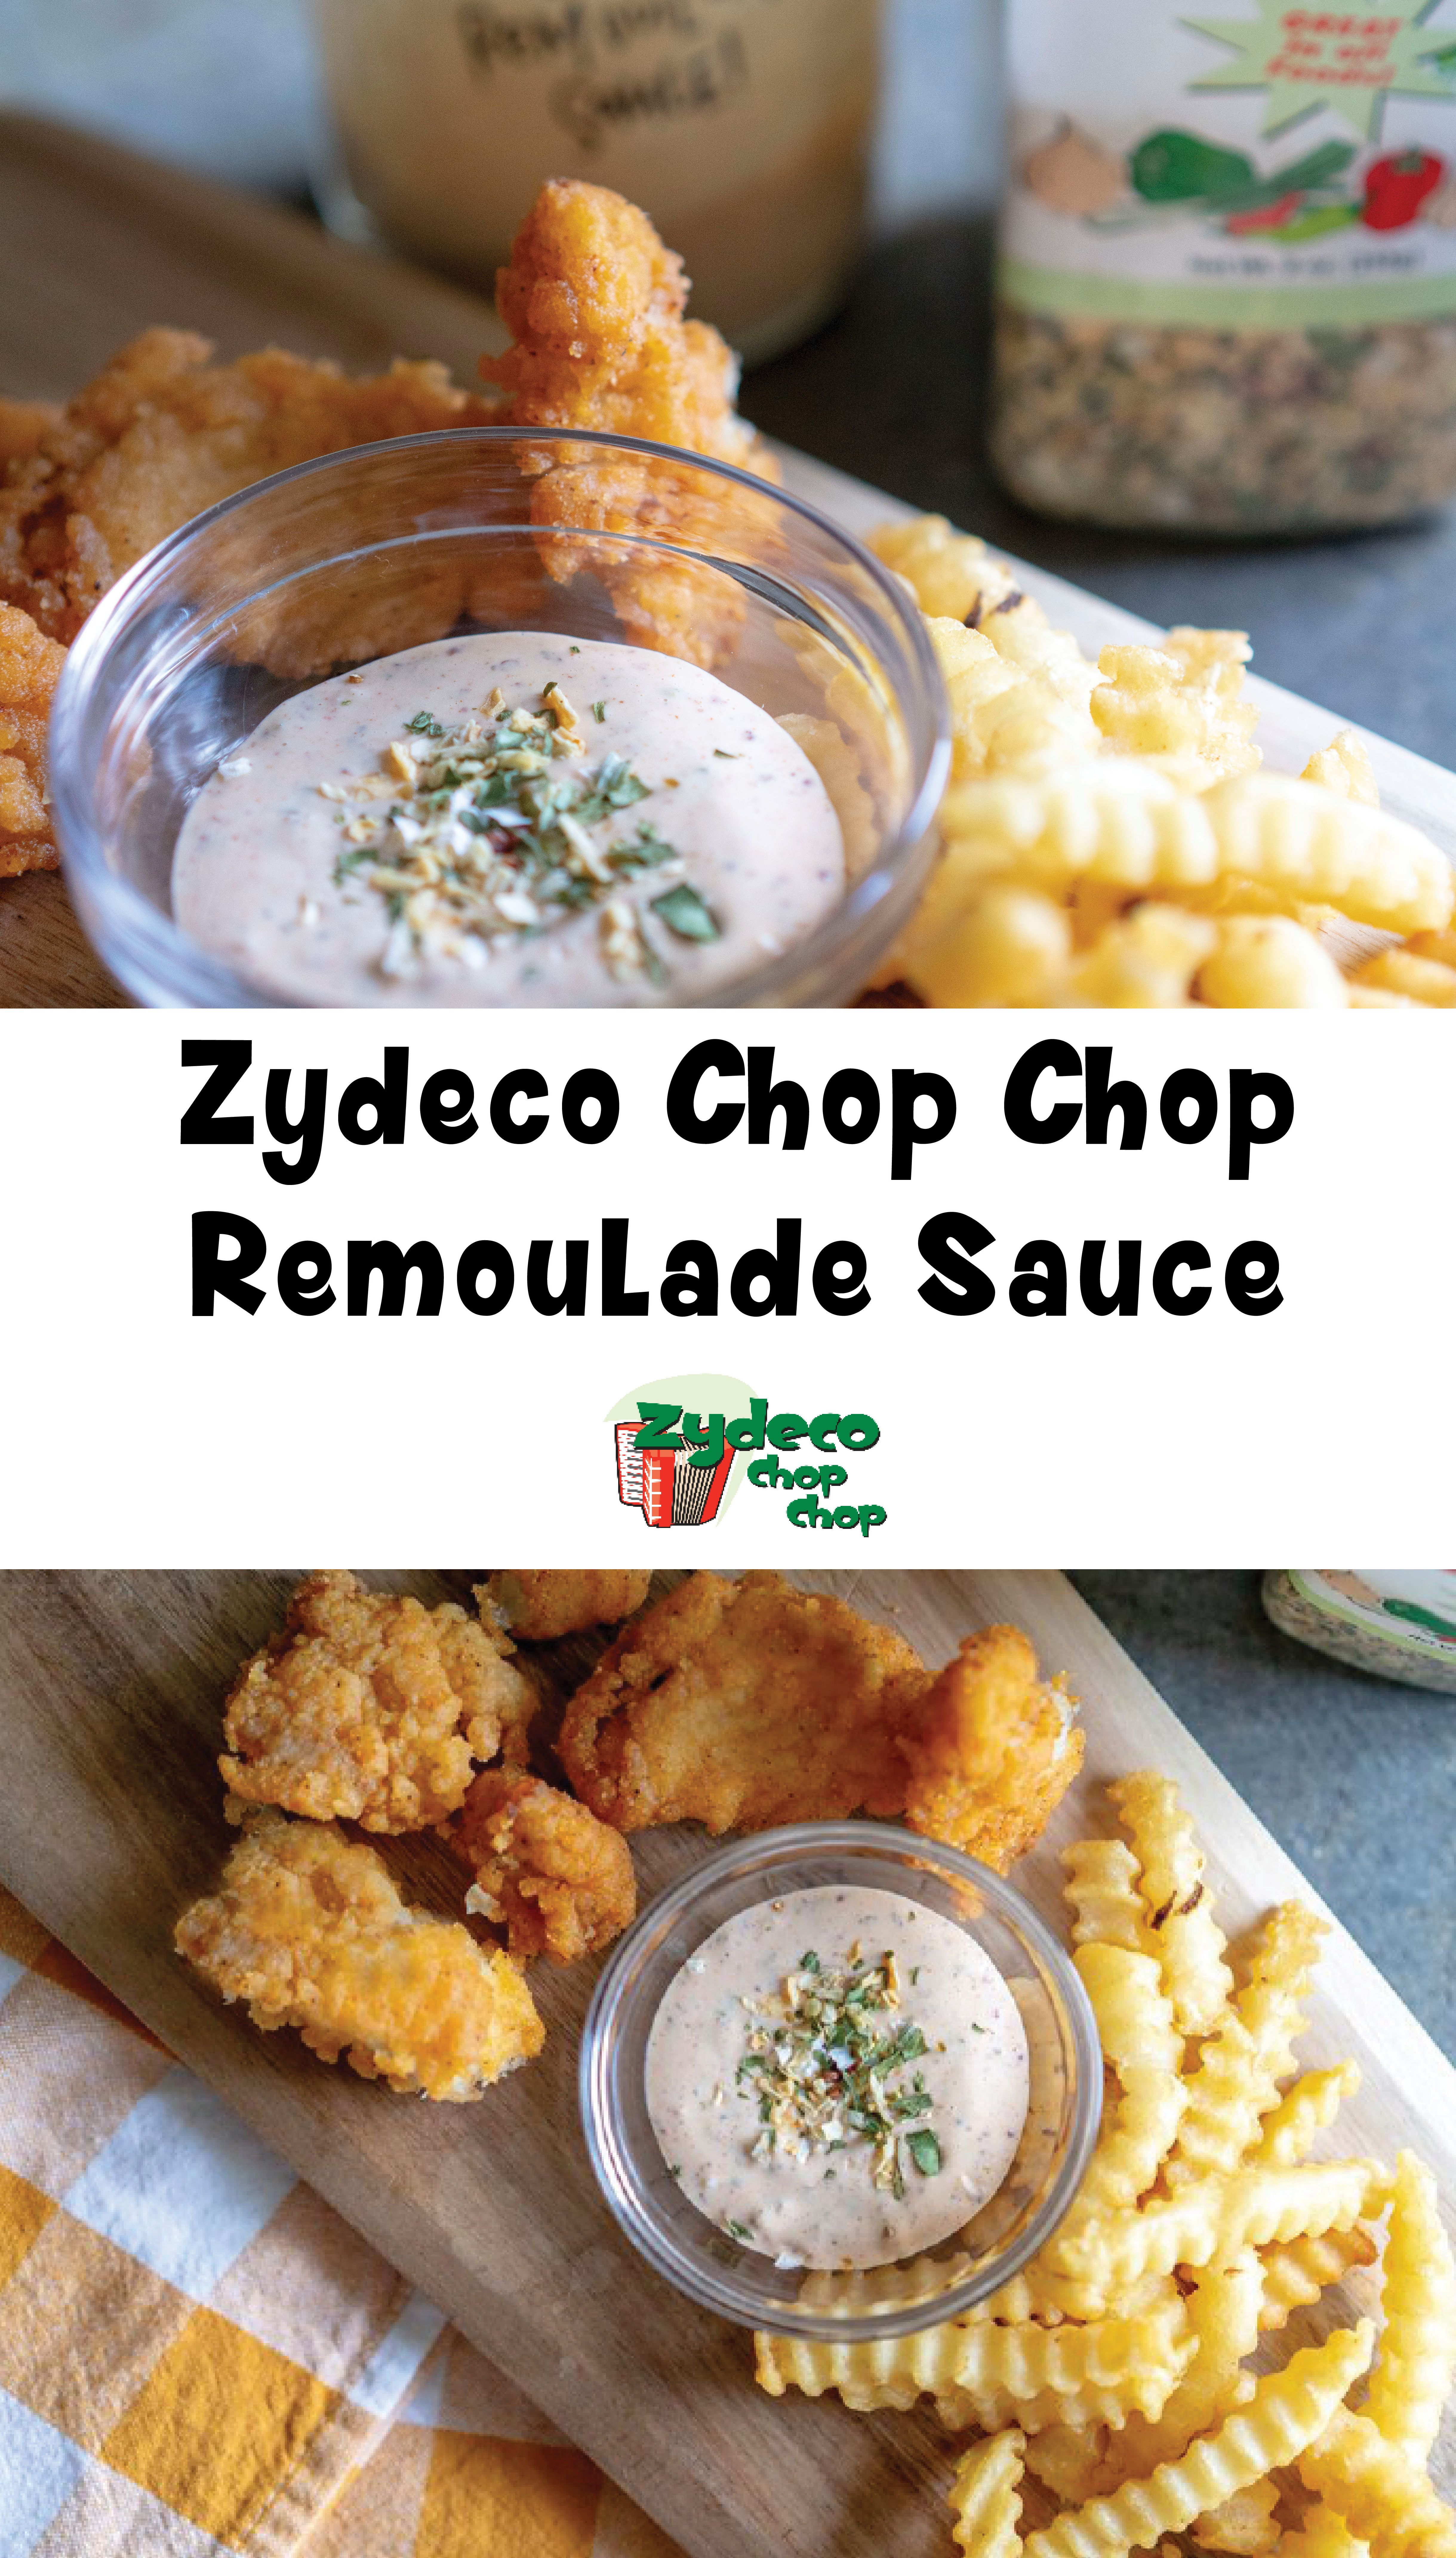 Zydeco Chop Chop Remoulade Sauce 1 Cup Mayonnaise 2